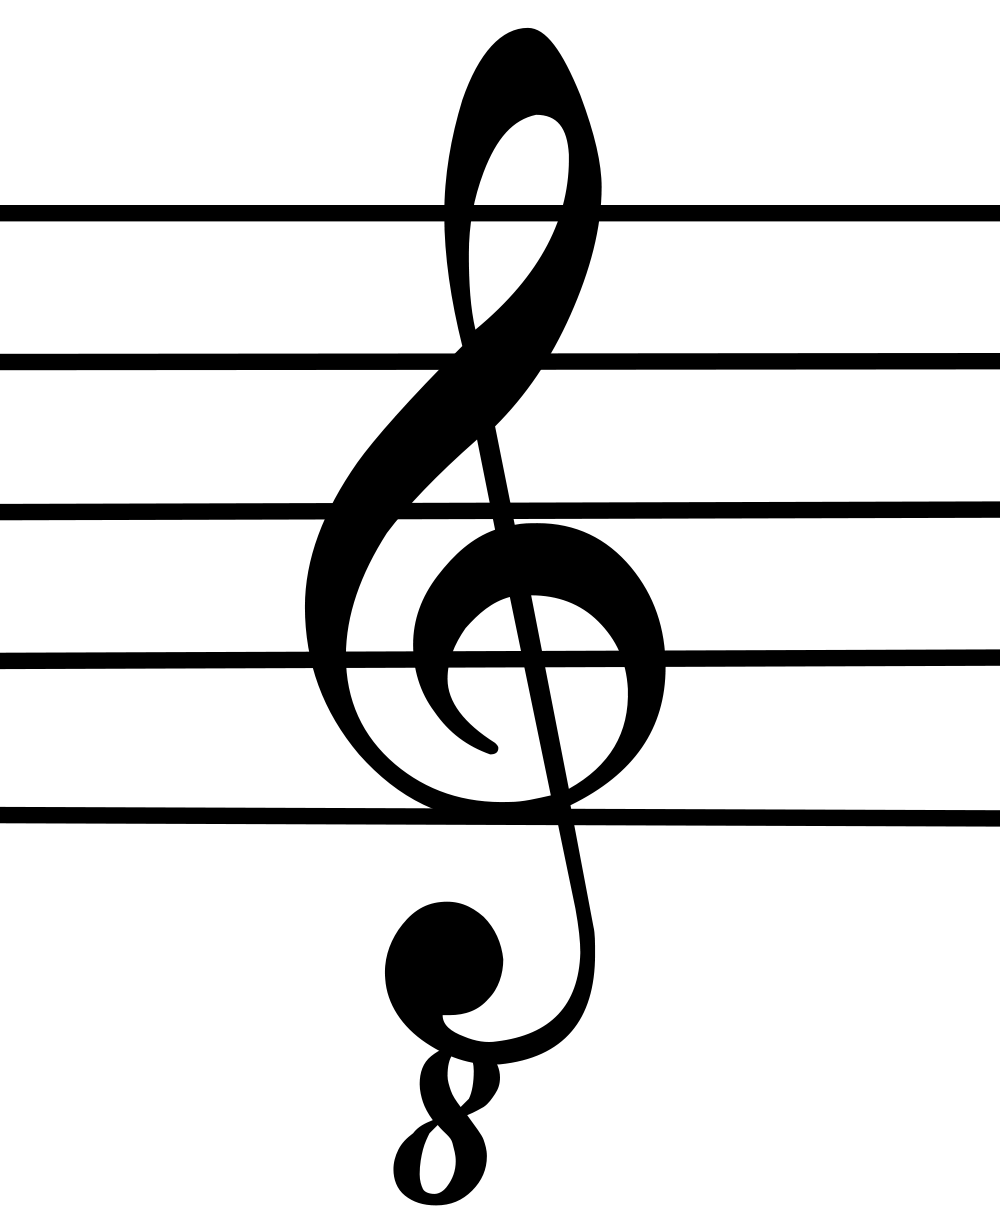 Octave Clef